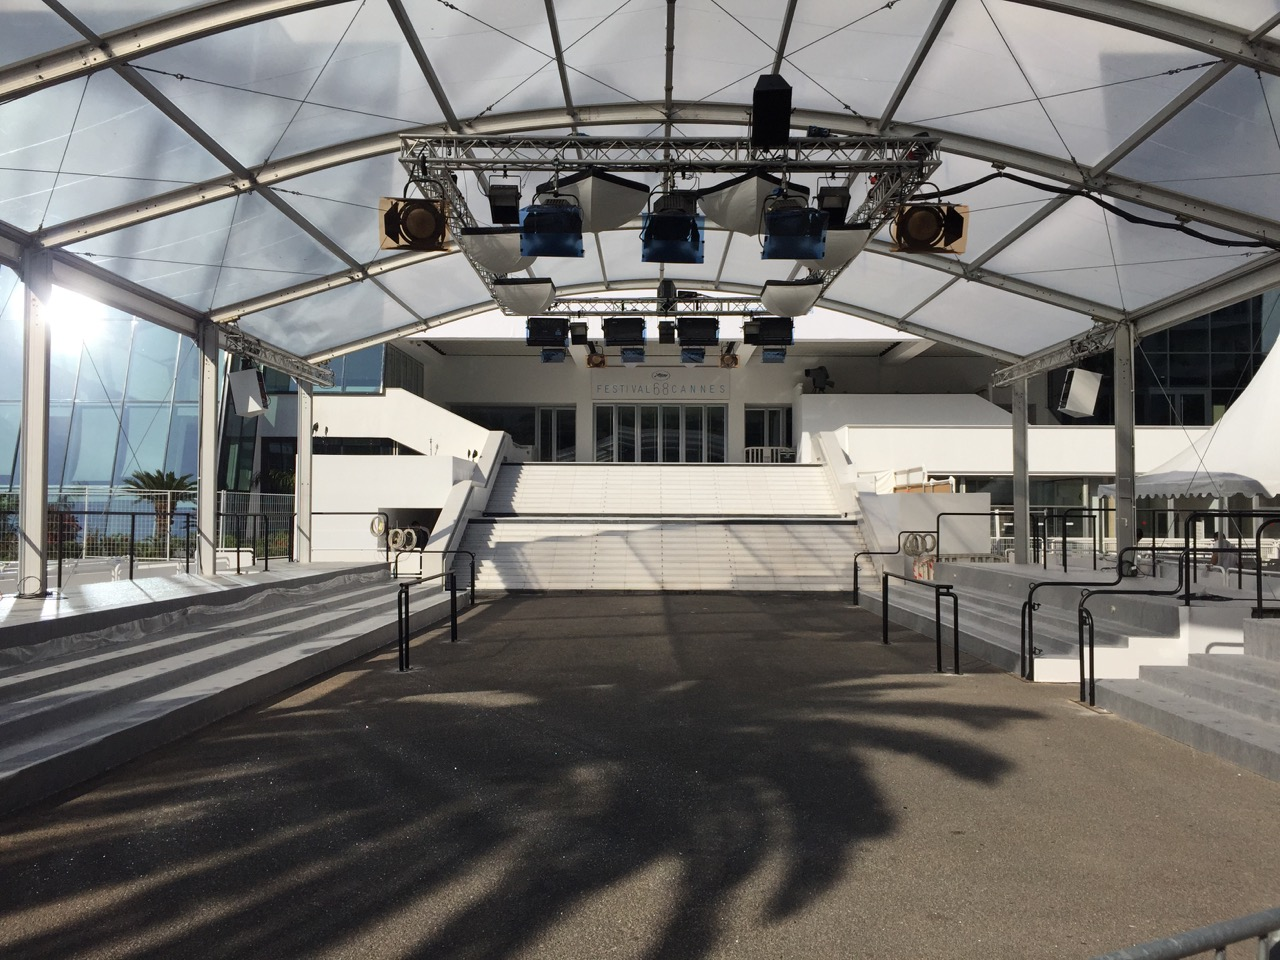 The Palais des Festivals is ready to welcome the 68th Cannes Film Festival 2015